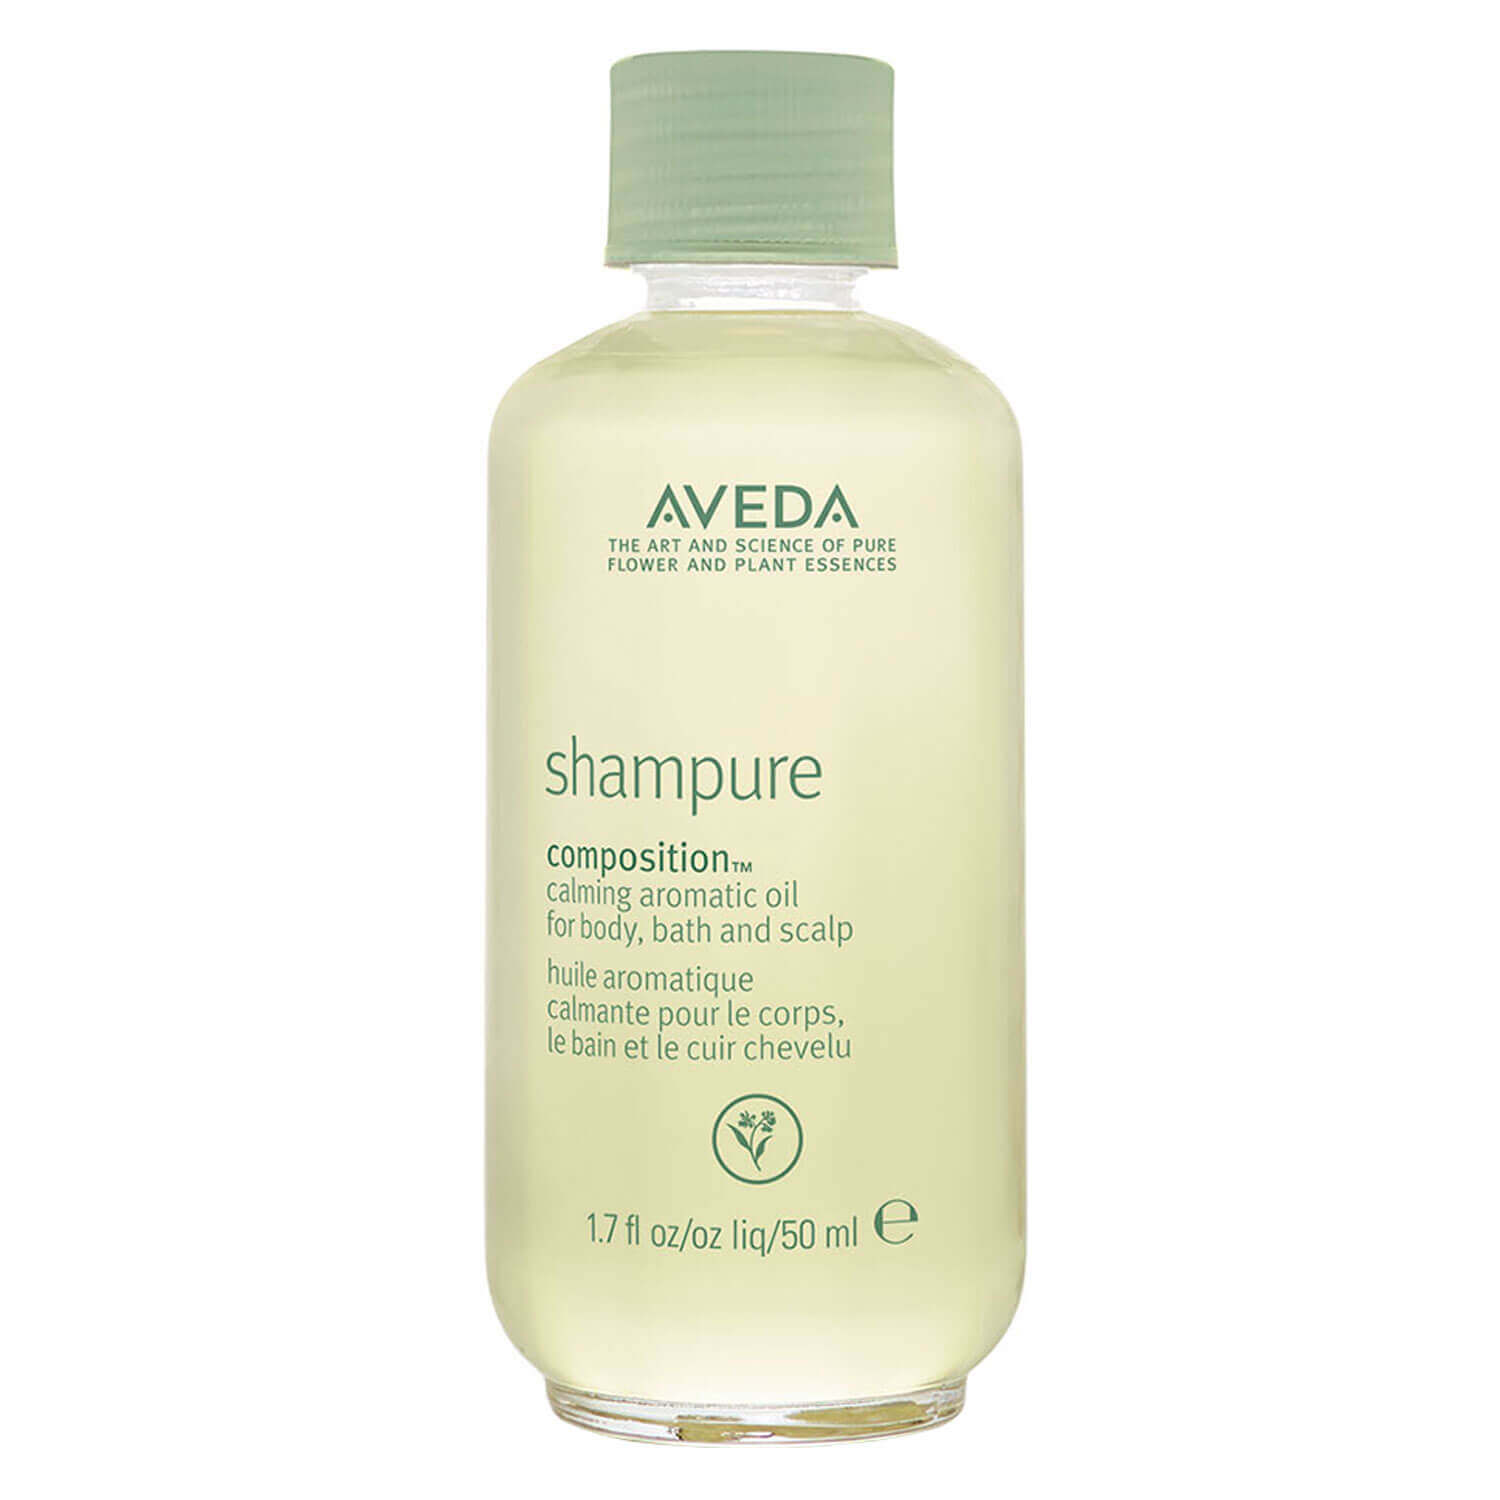 shampure - composition oil